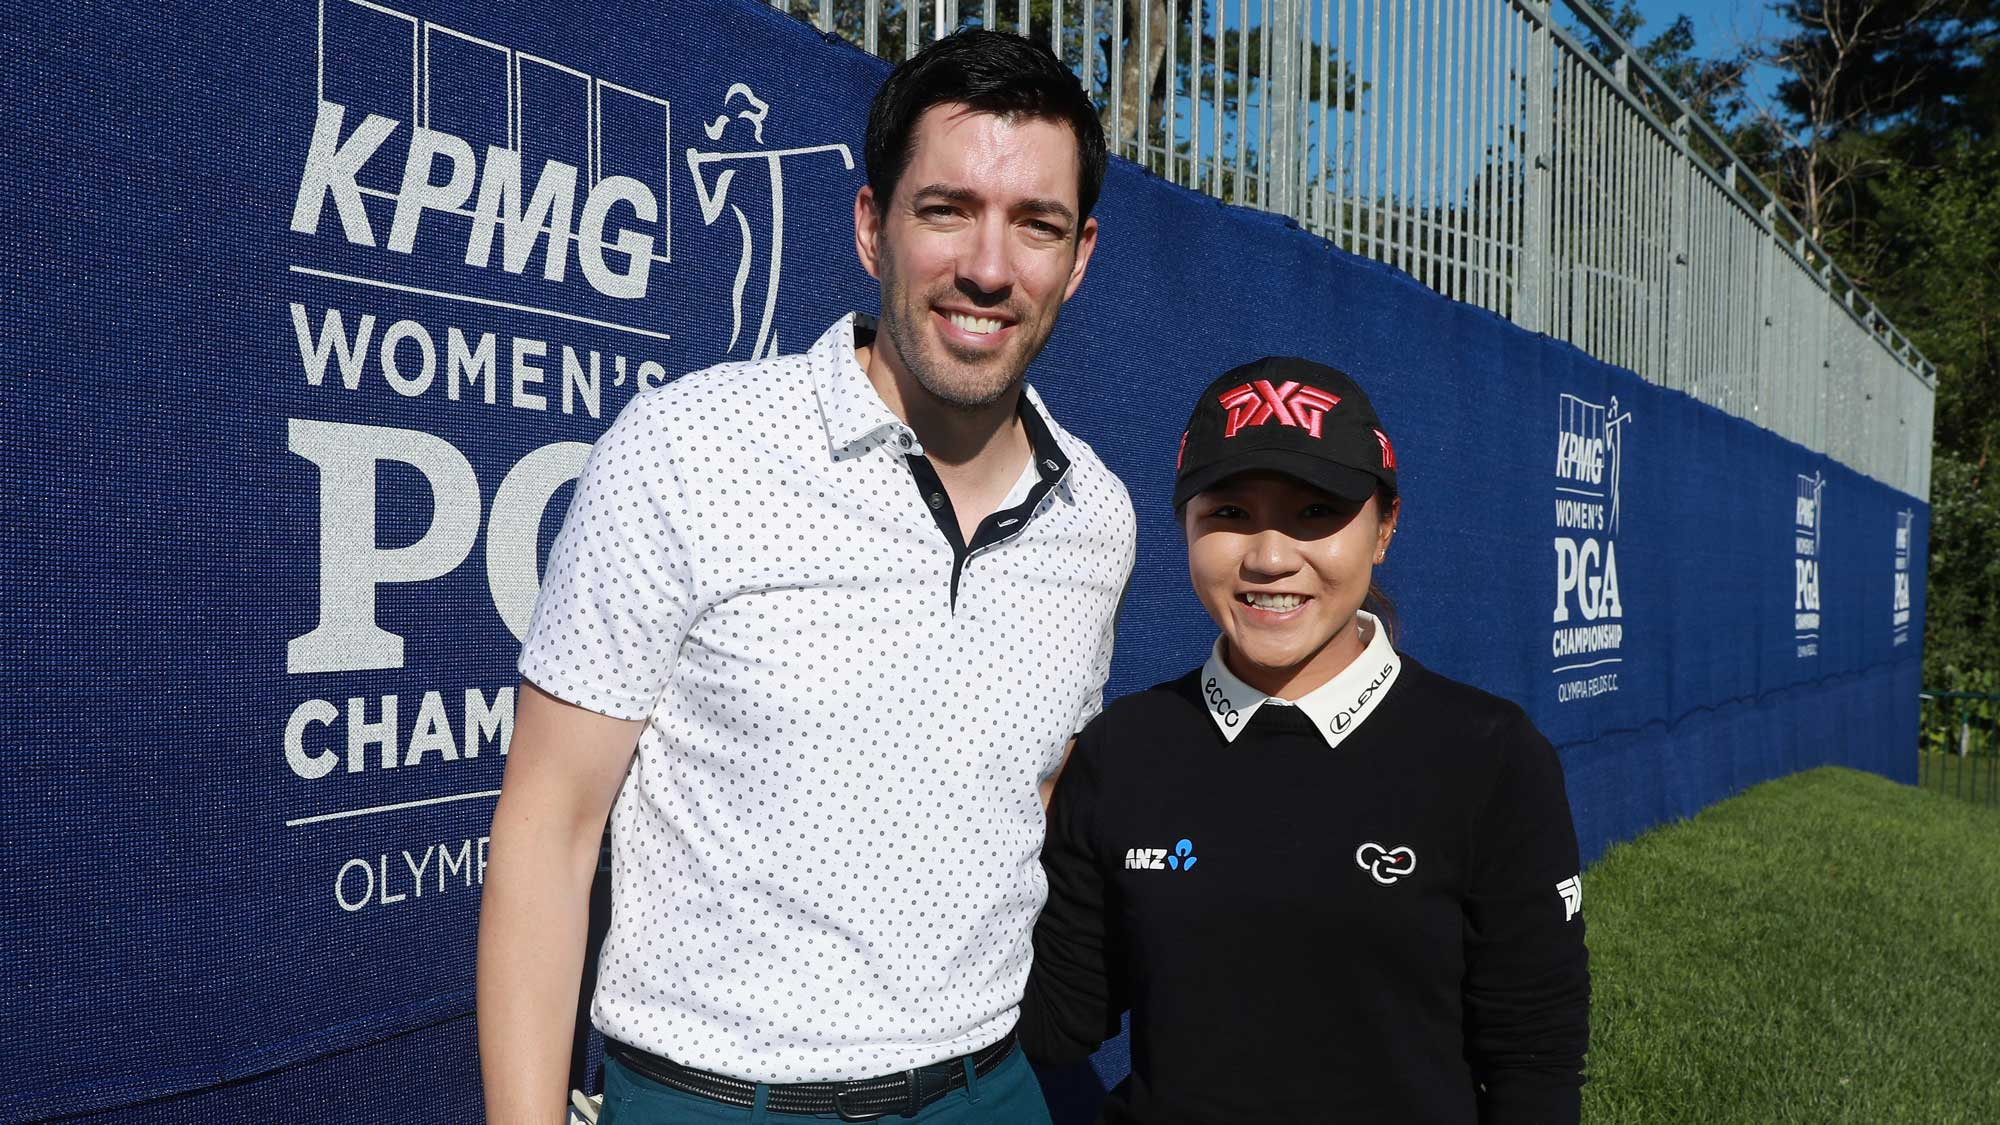 Drew Scott of HGTV (L) poses with Lydia Ko during the pro-am prior to the start of the 2017 KPMG Women's PGA Championship